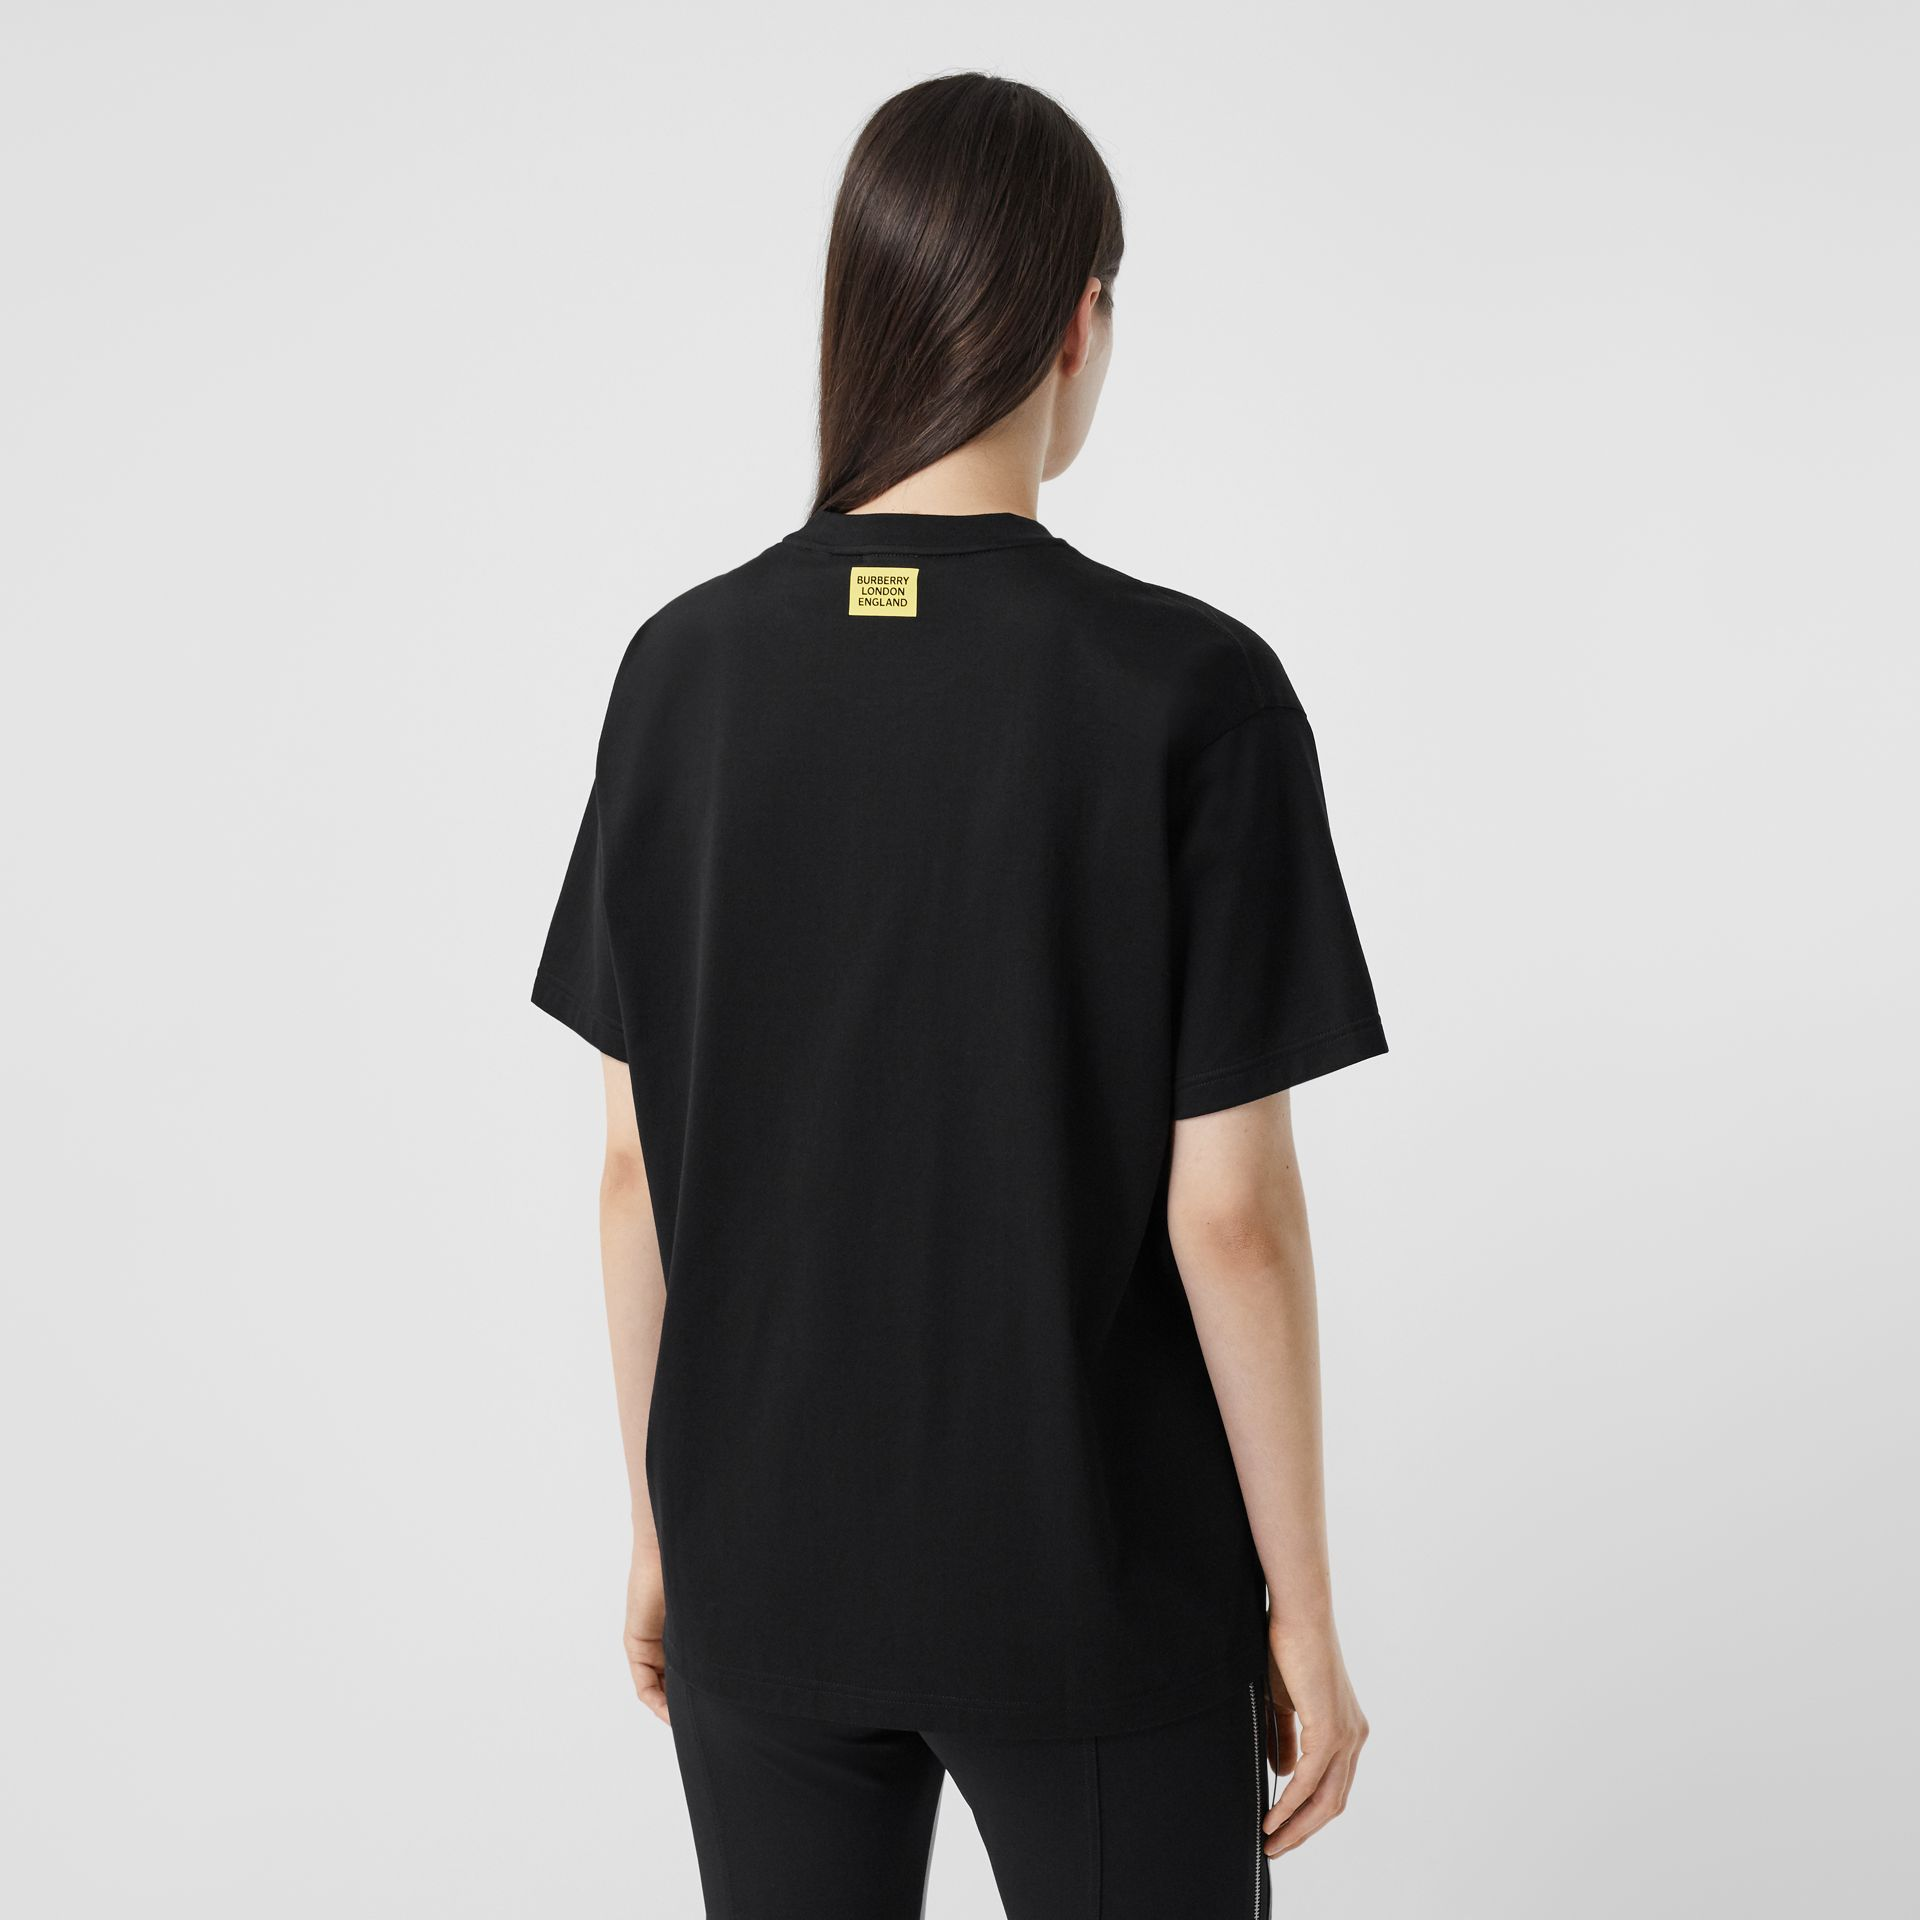 Slogan Print Oversized T-shirt – Online Exclusive in Black - Women | Burberry - gallery image 2